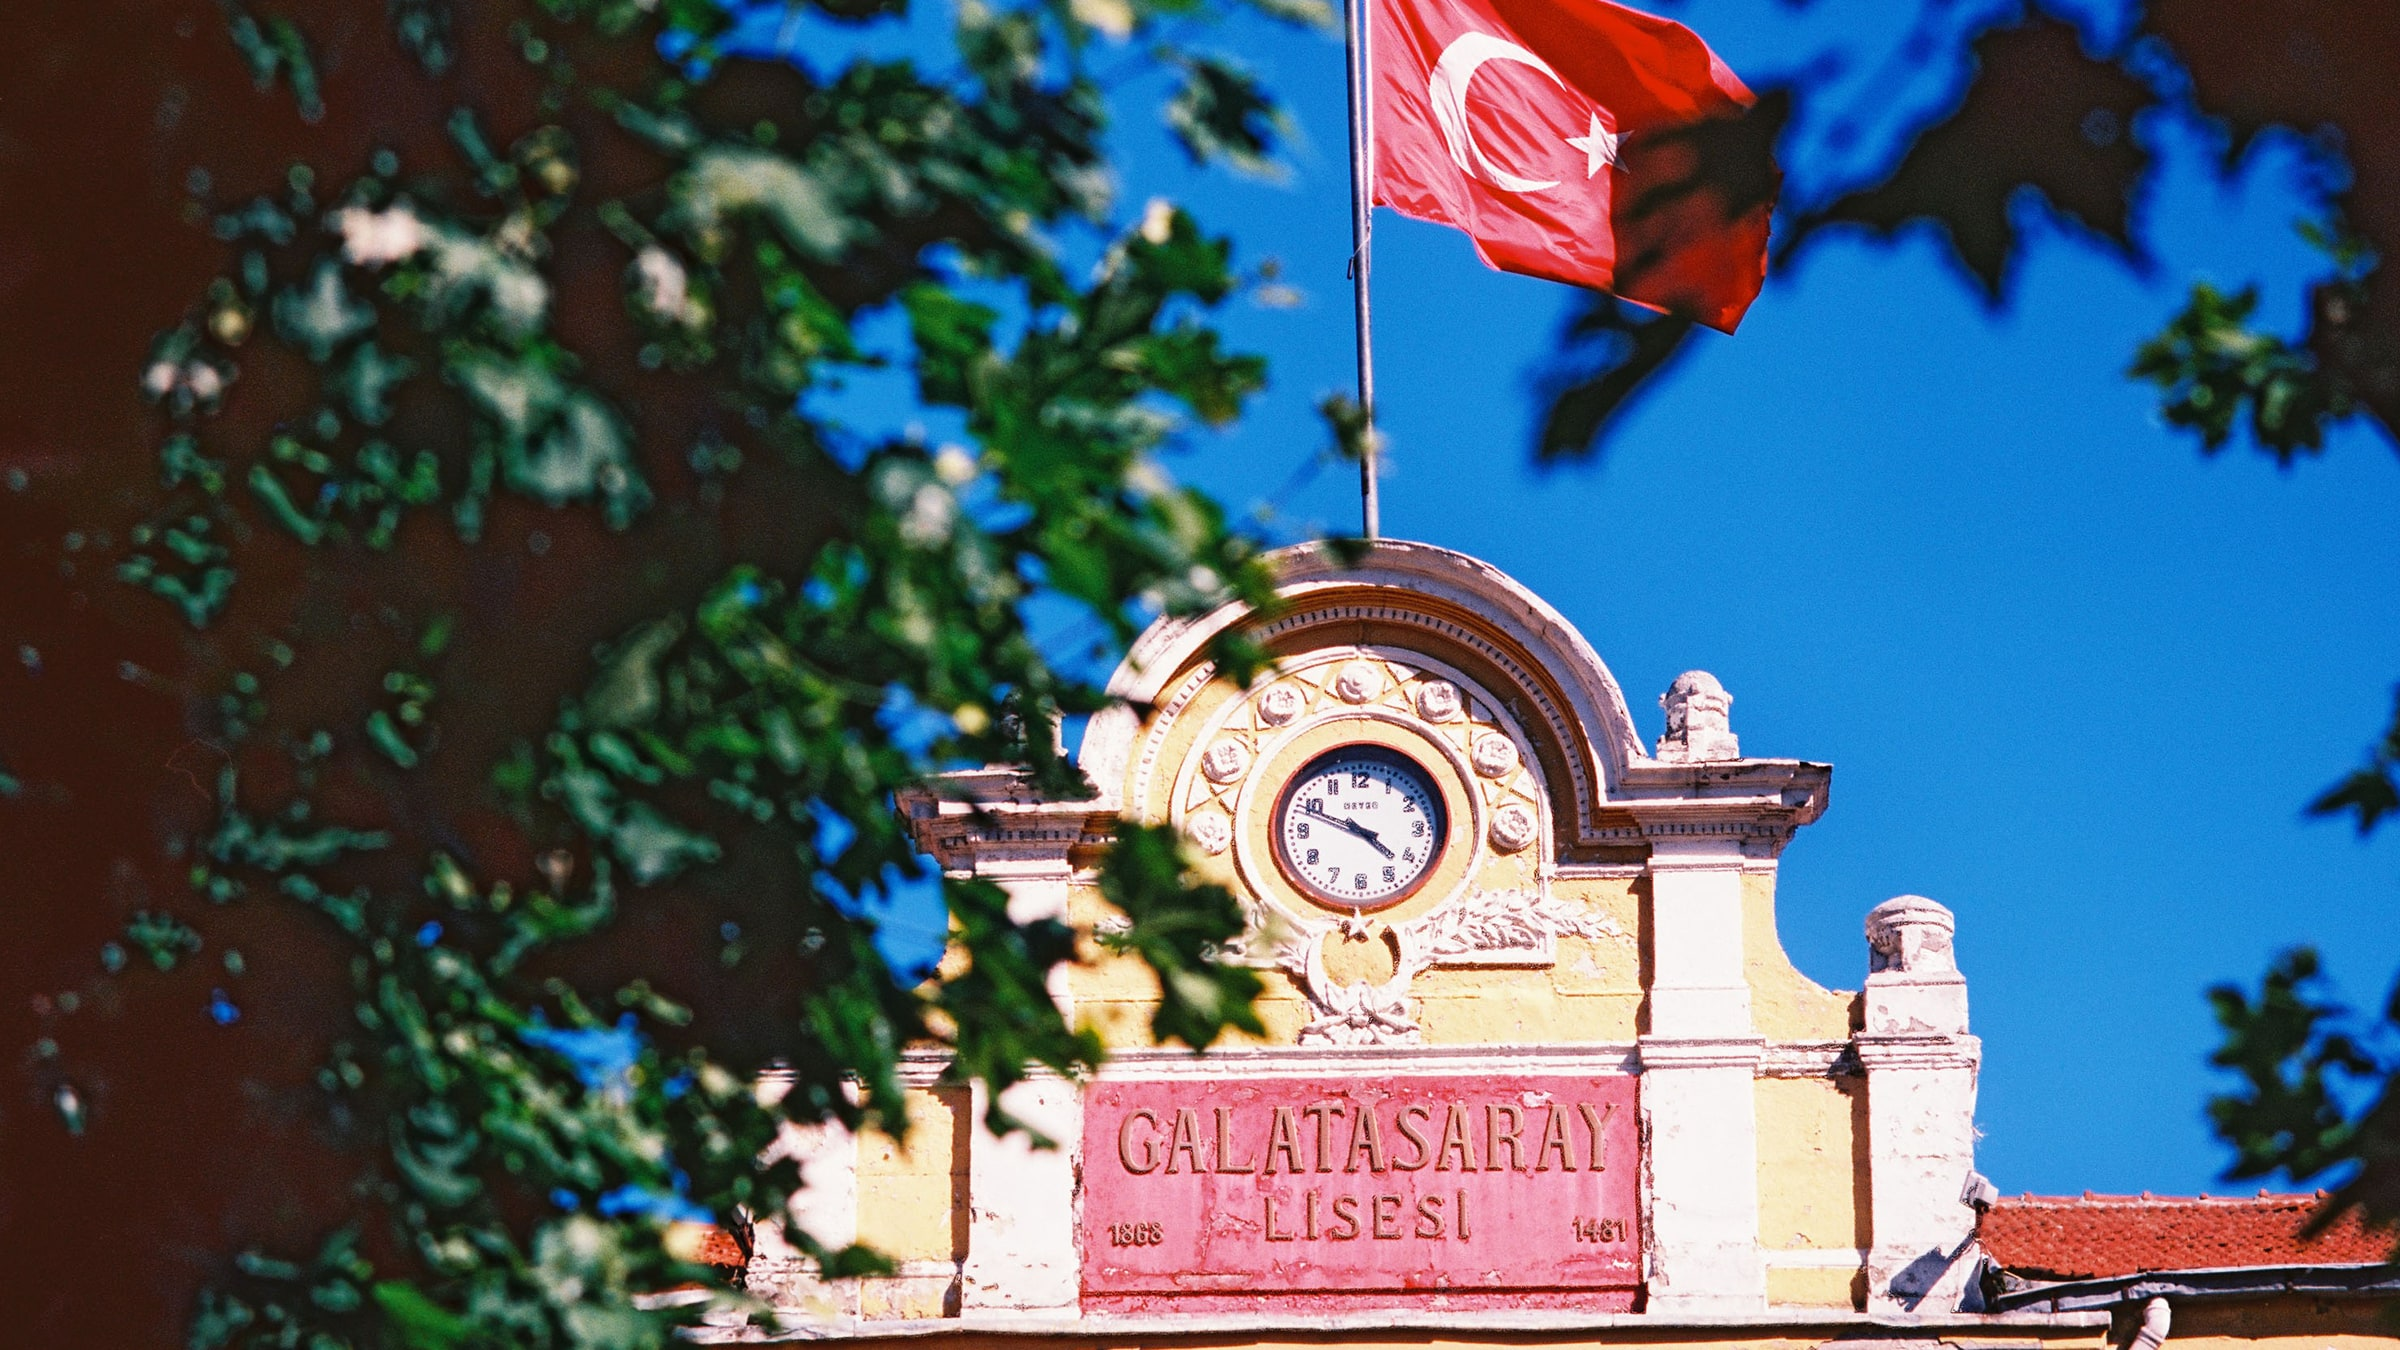 School Square<br> Galatasaray slide 3